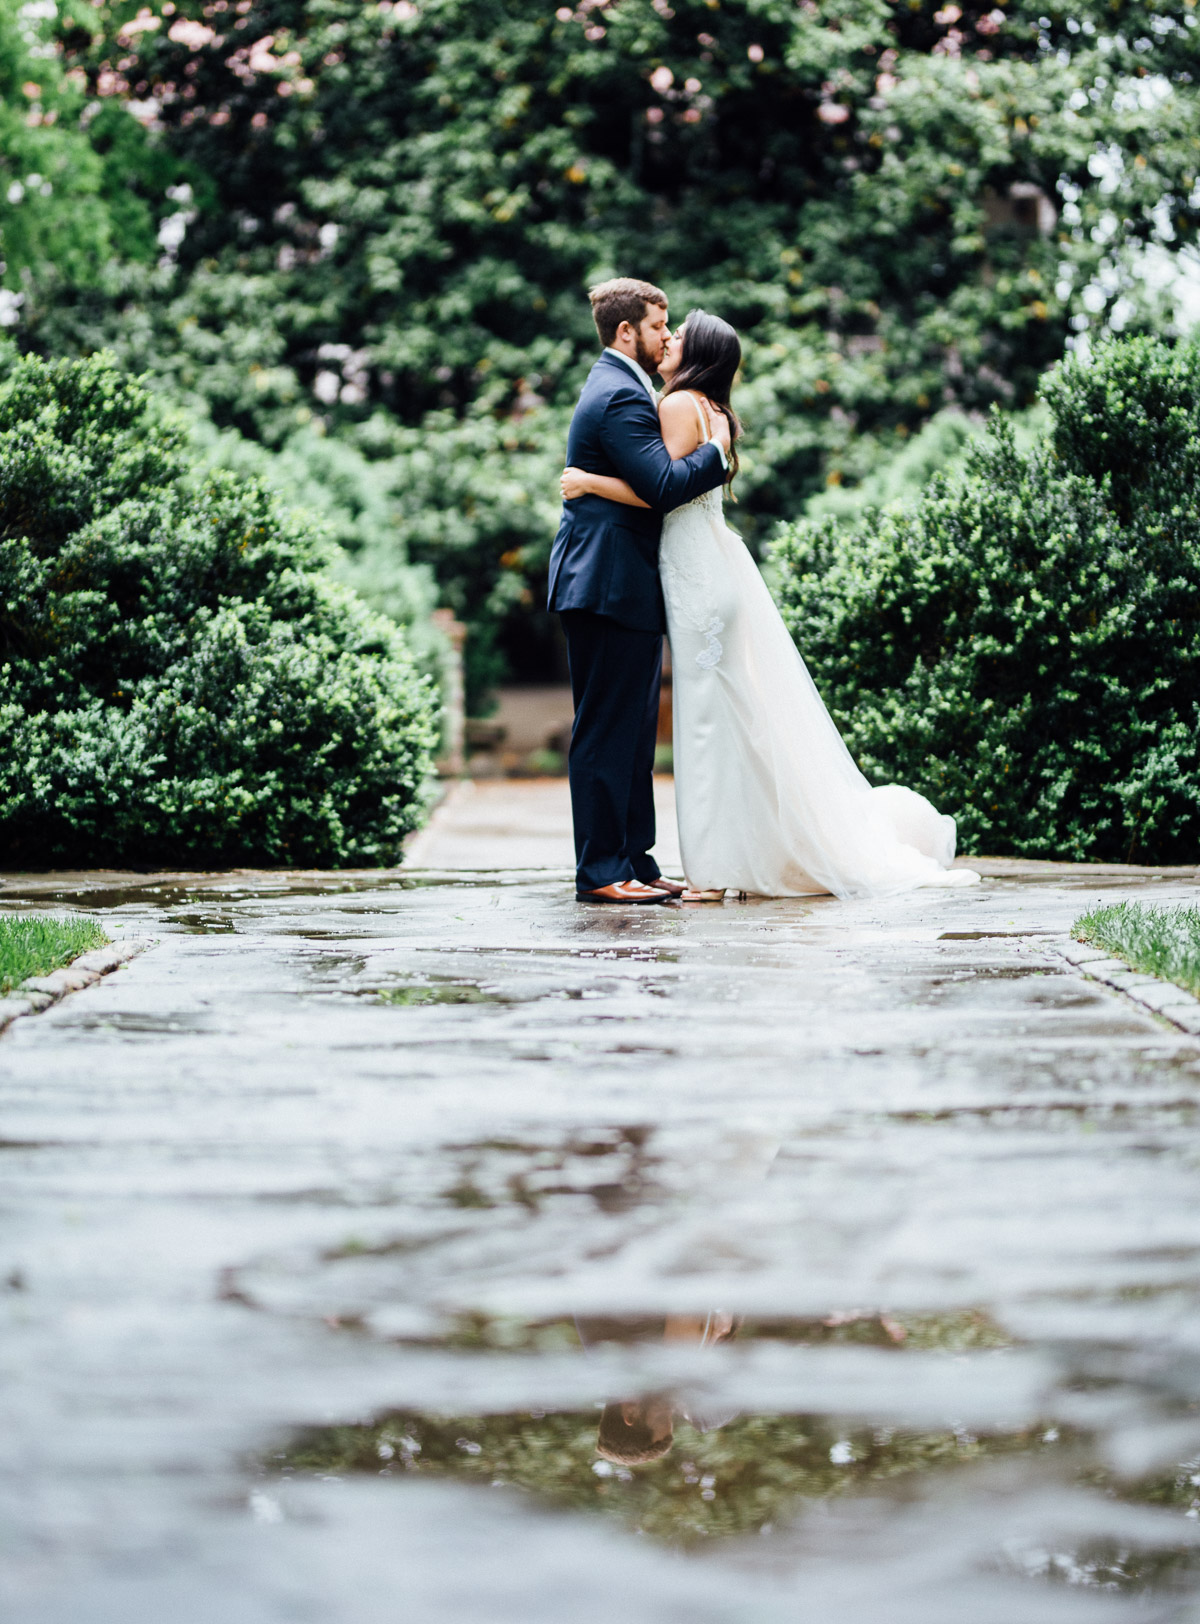 bride-groom-portrait-puddle Belle Meade Plantation Wedding | Kendall and Andrew